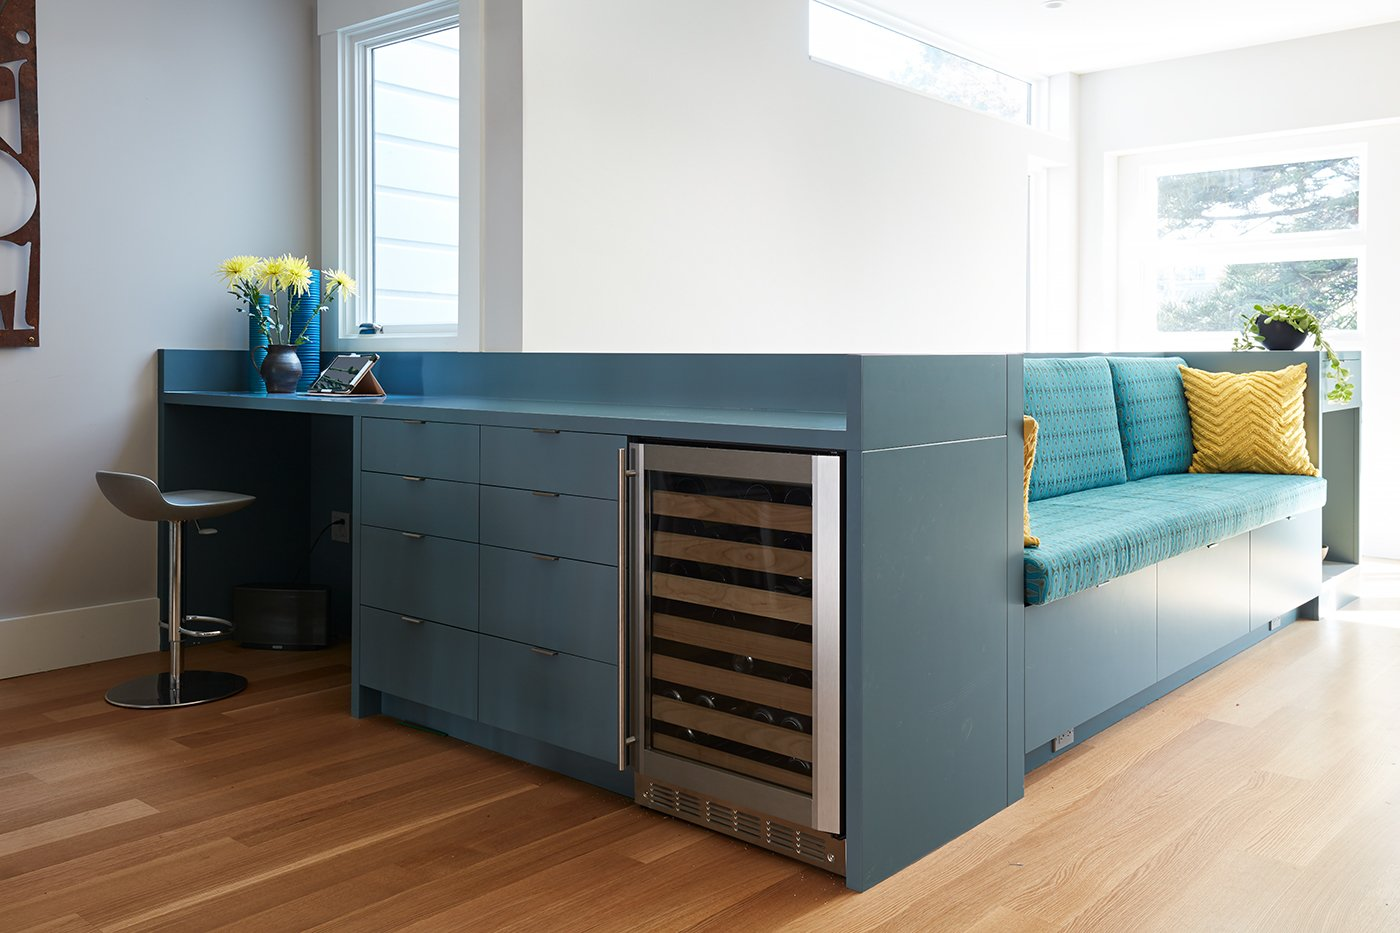 Megacabinet House desk and sofa with built-in storage